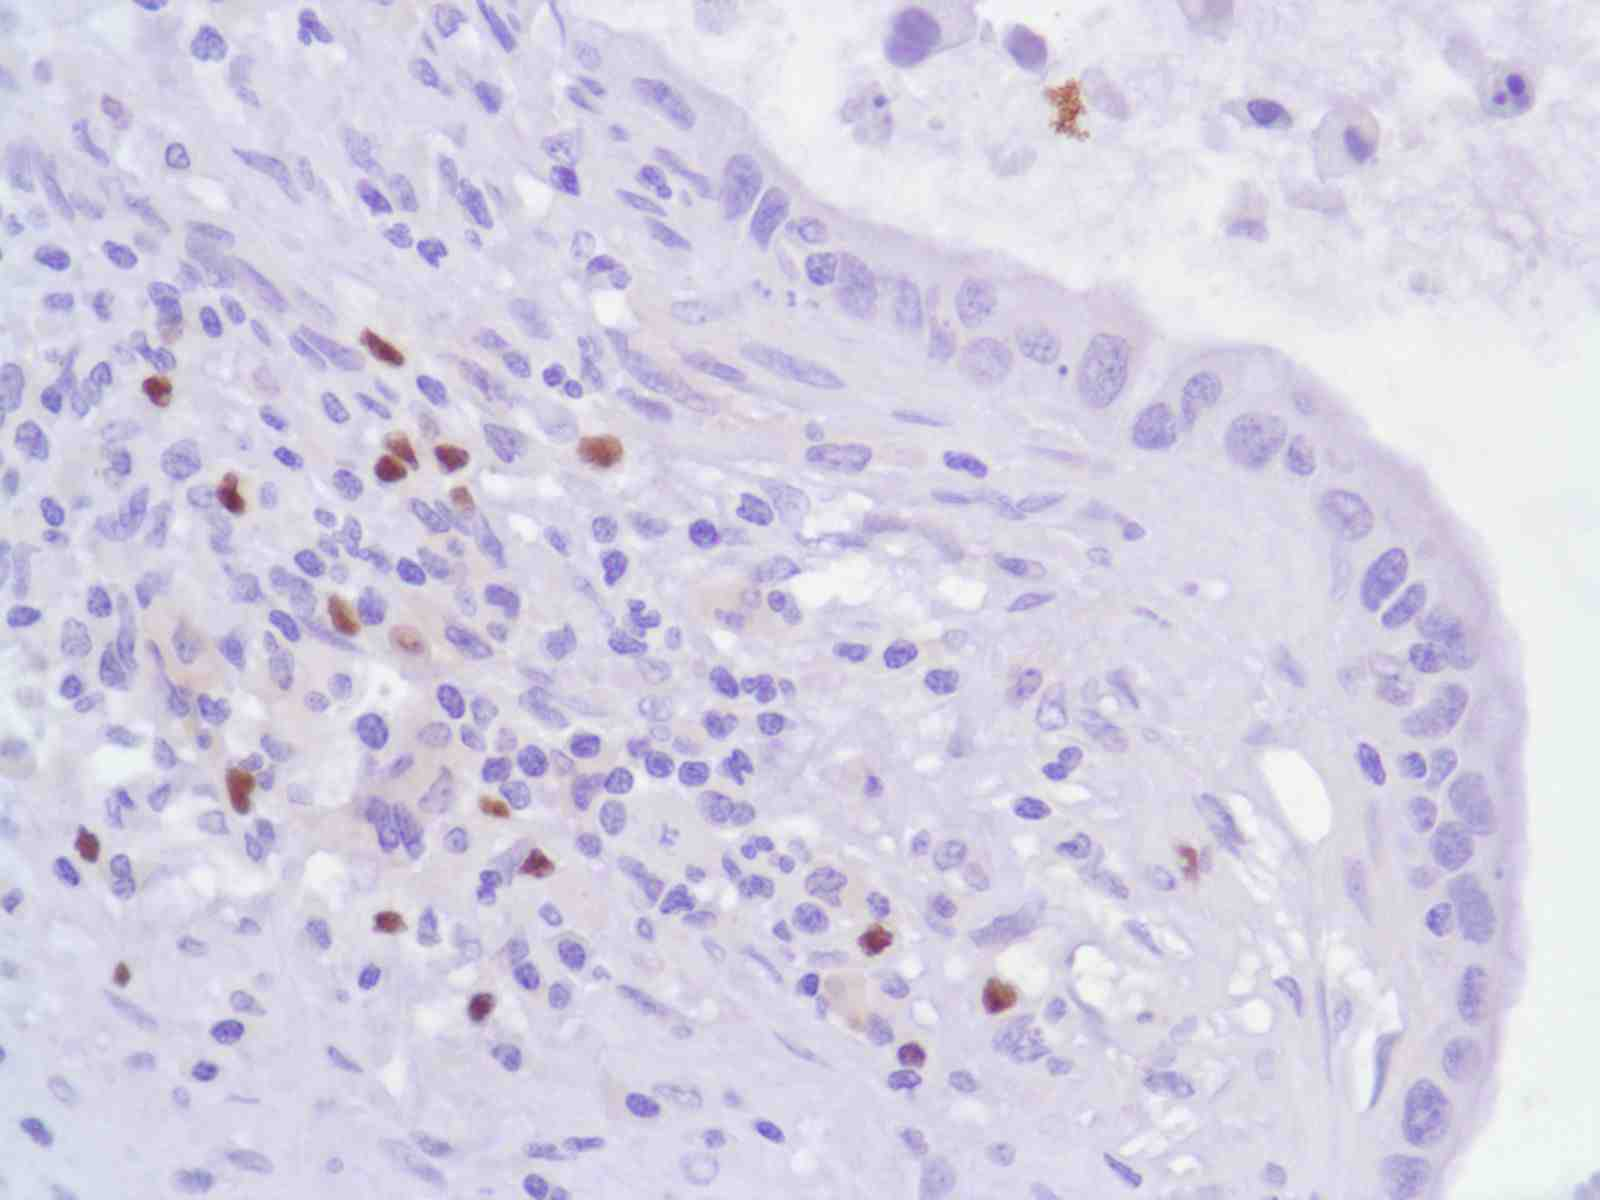 Human Pancreatic Adenocarcinoma stained with anti-FoxP3 antibody